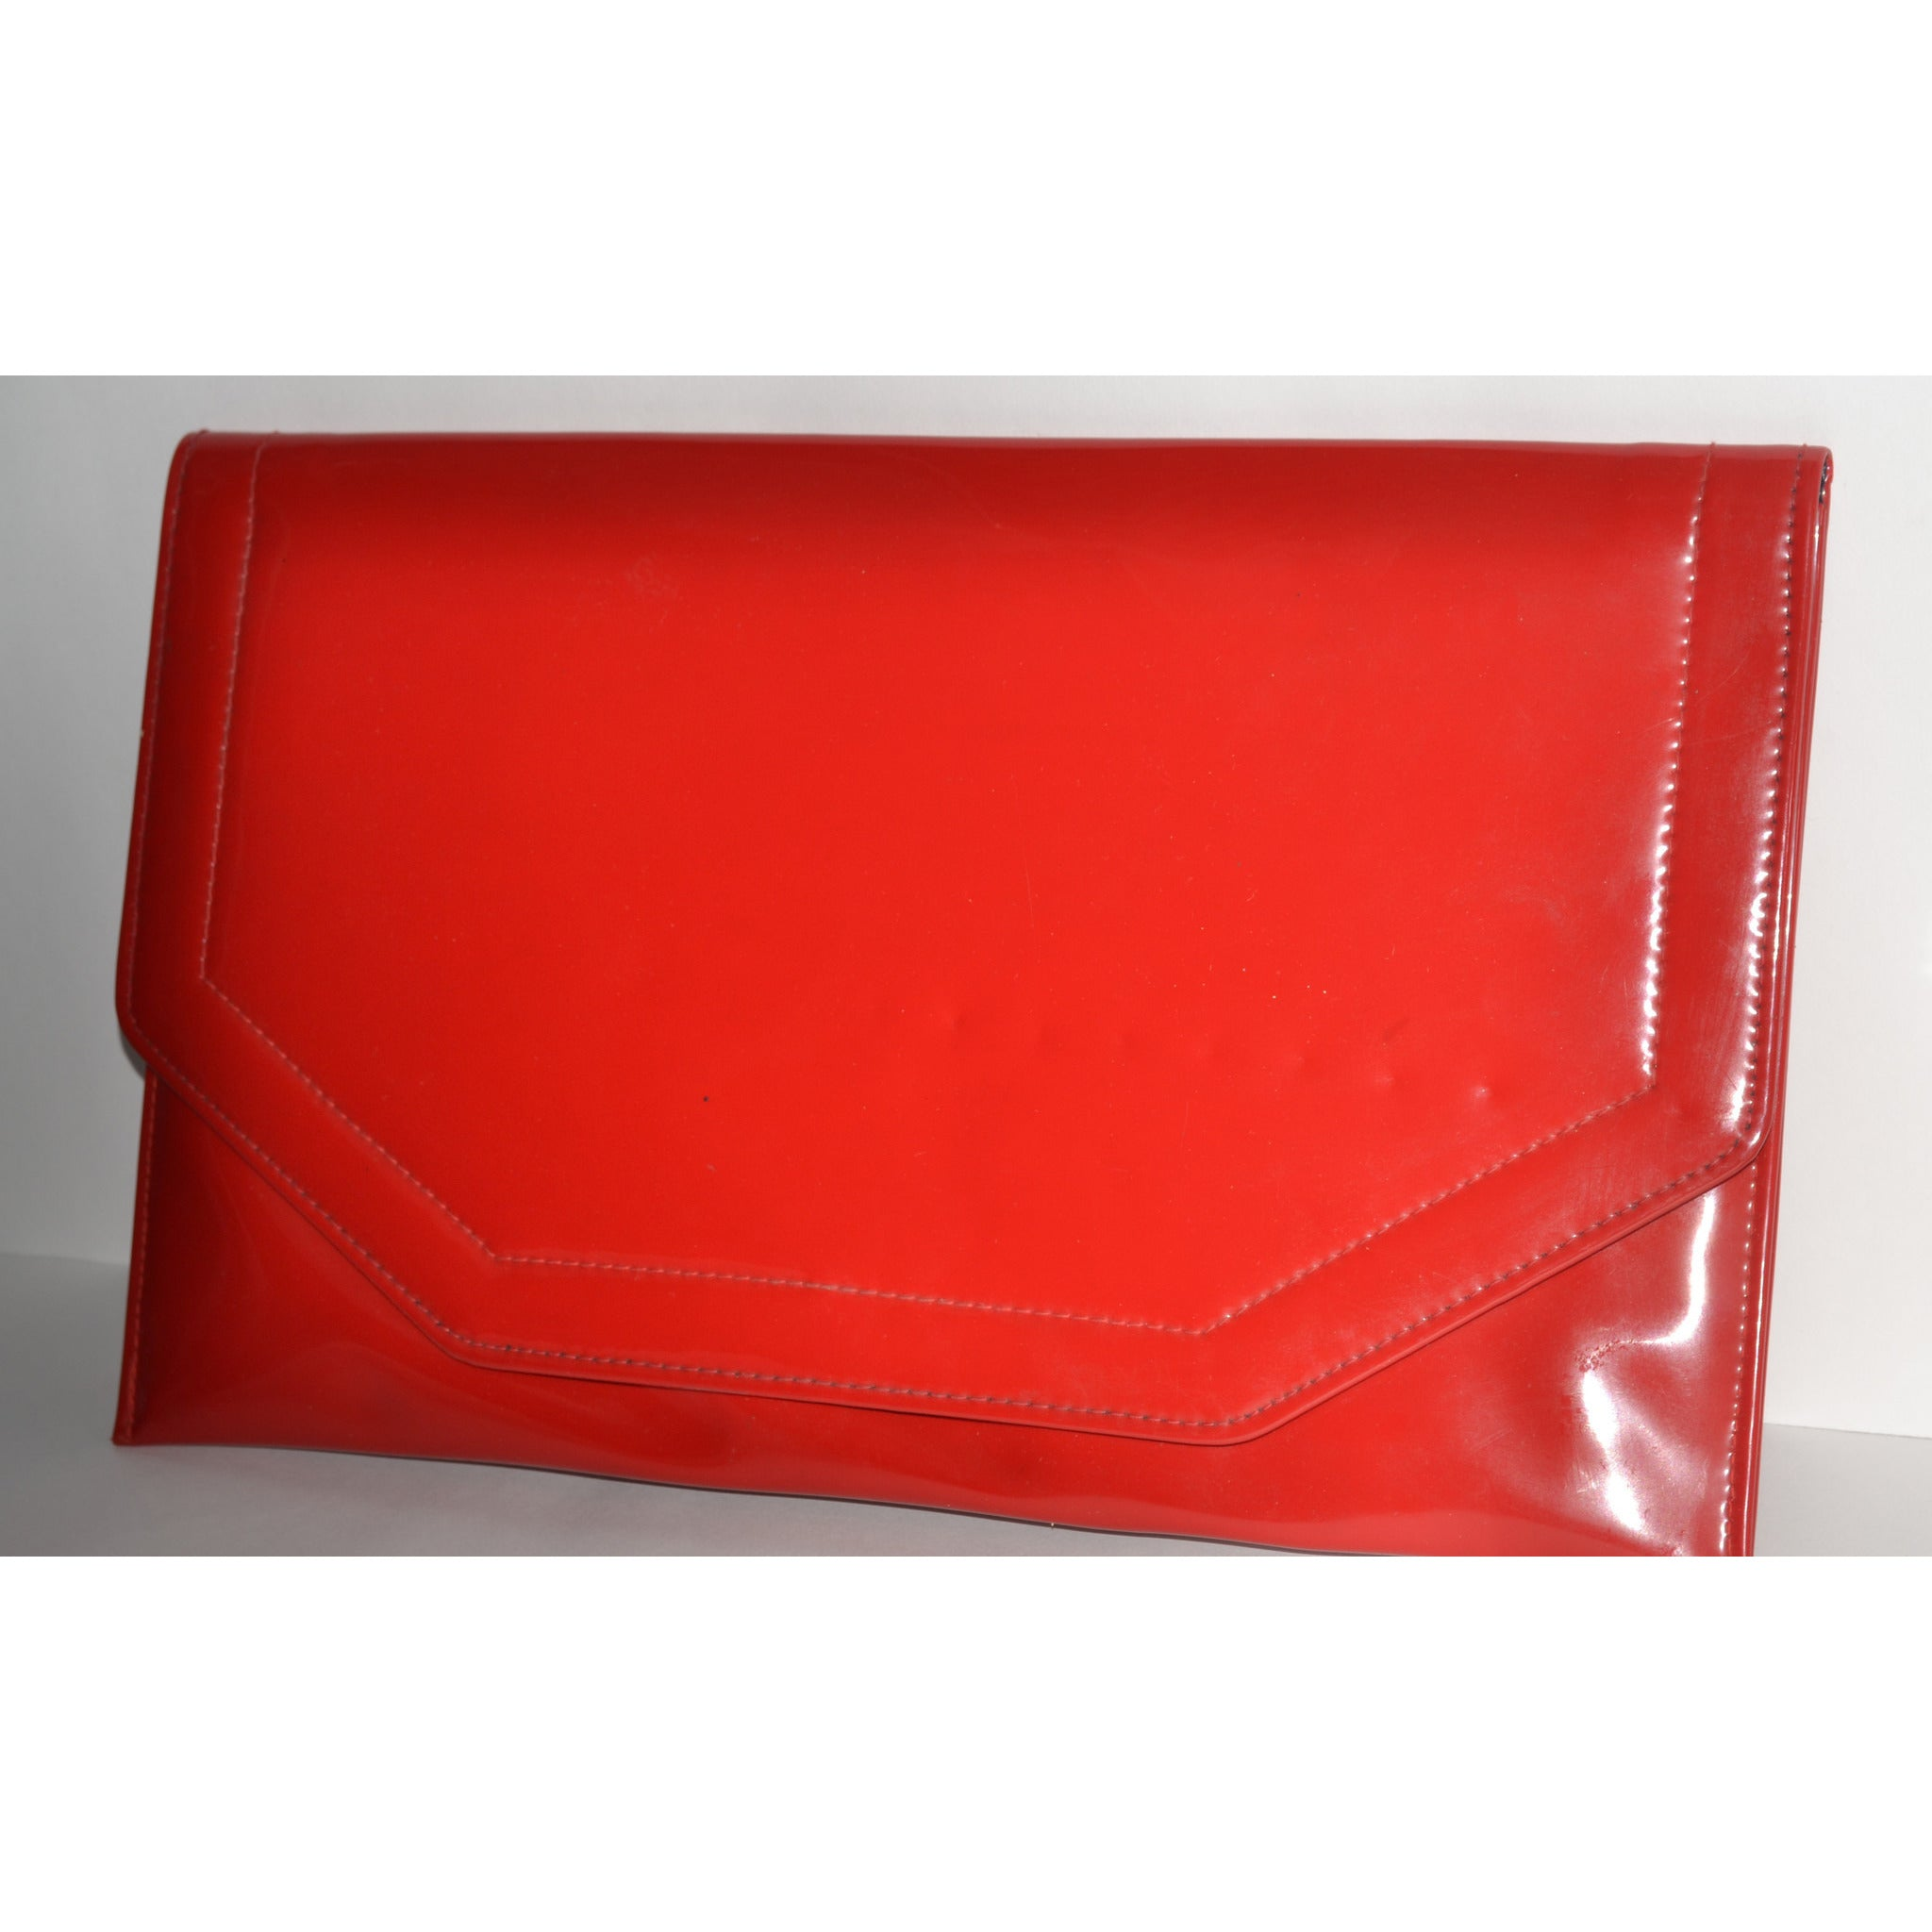 Vintage Red Envelope High Gloss Purse By HL